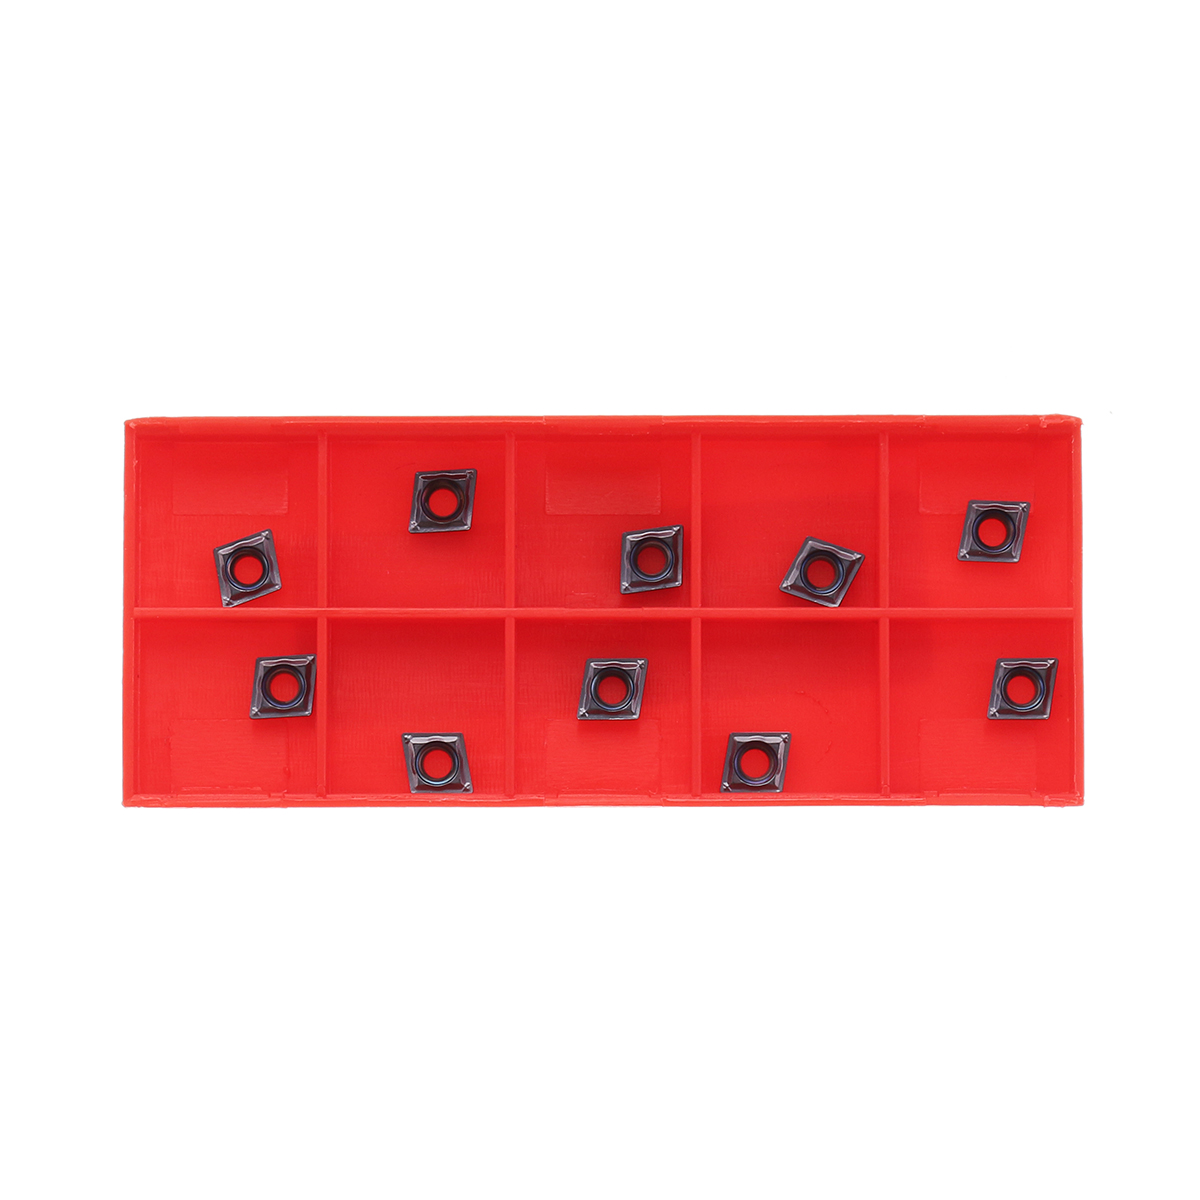 Drillpro 10pcs CCMT060204-SM Carbide Insert for SCLCR Turning Tool Holder